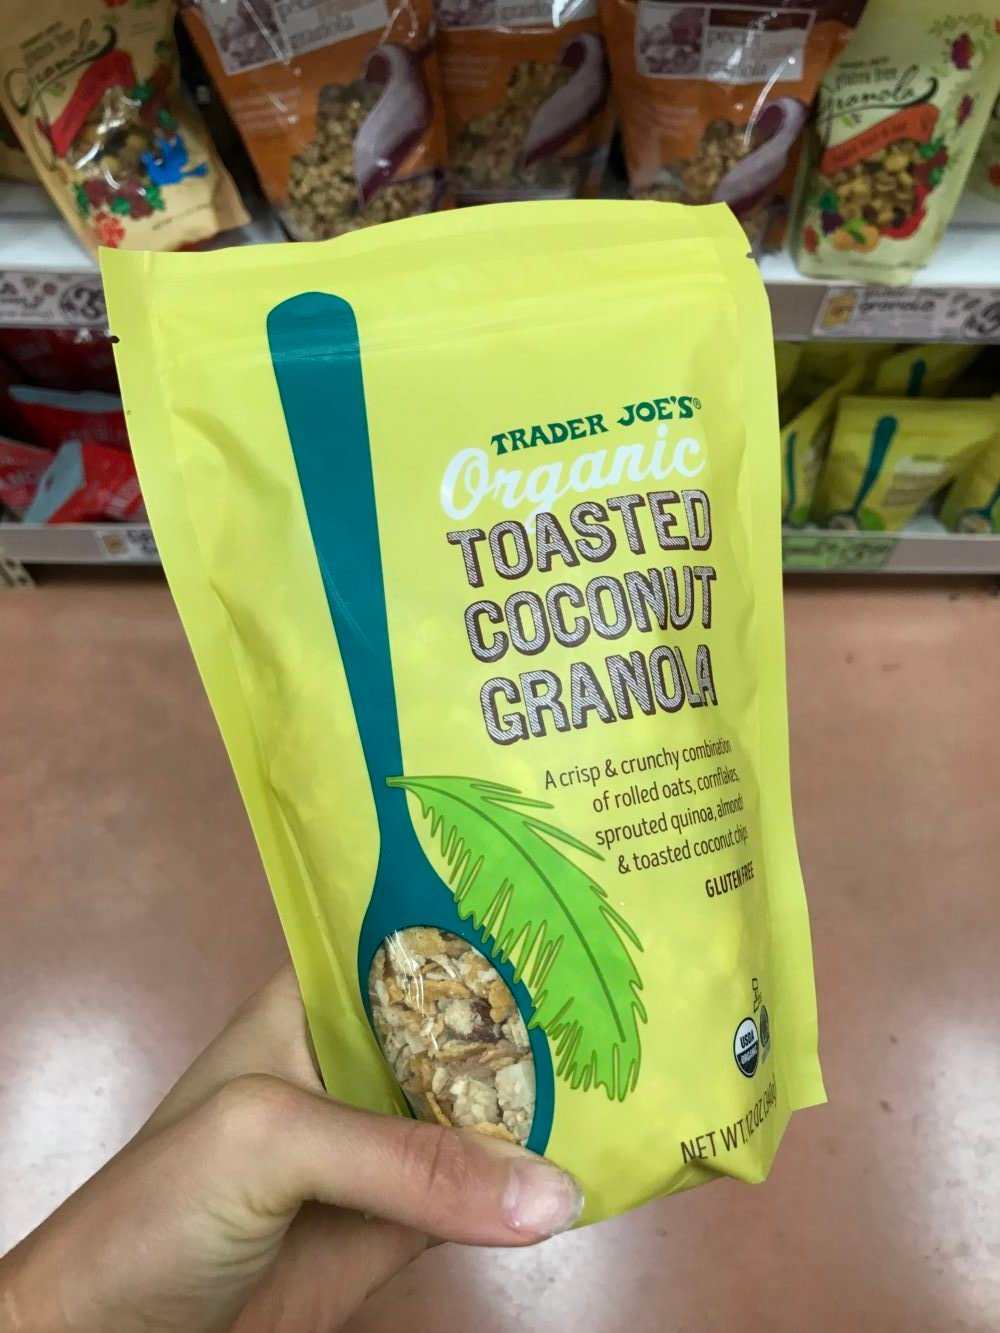 Here are 46 of our favorite finds at Trader Joe's including recipes to use their products in. What do you love at Trader Joe's?